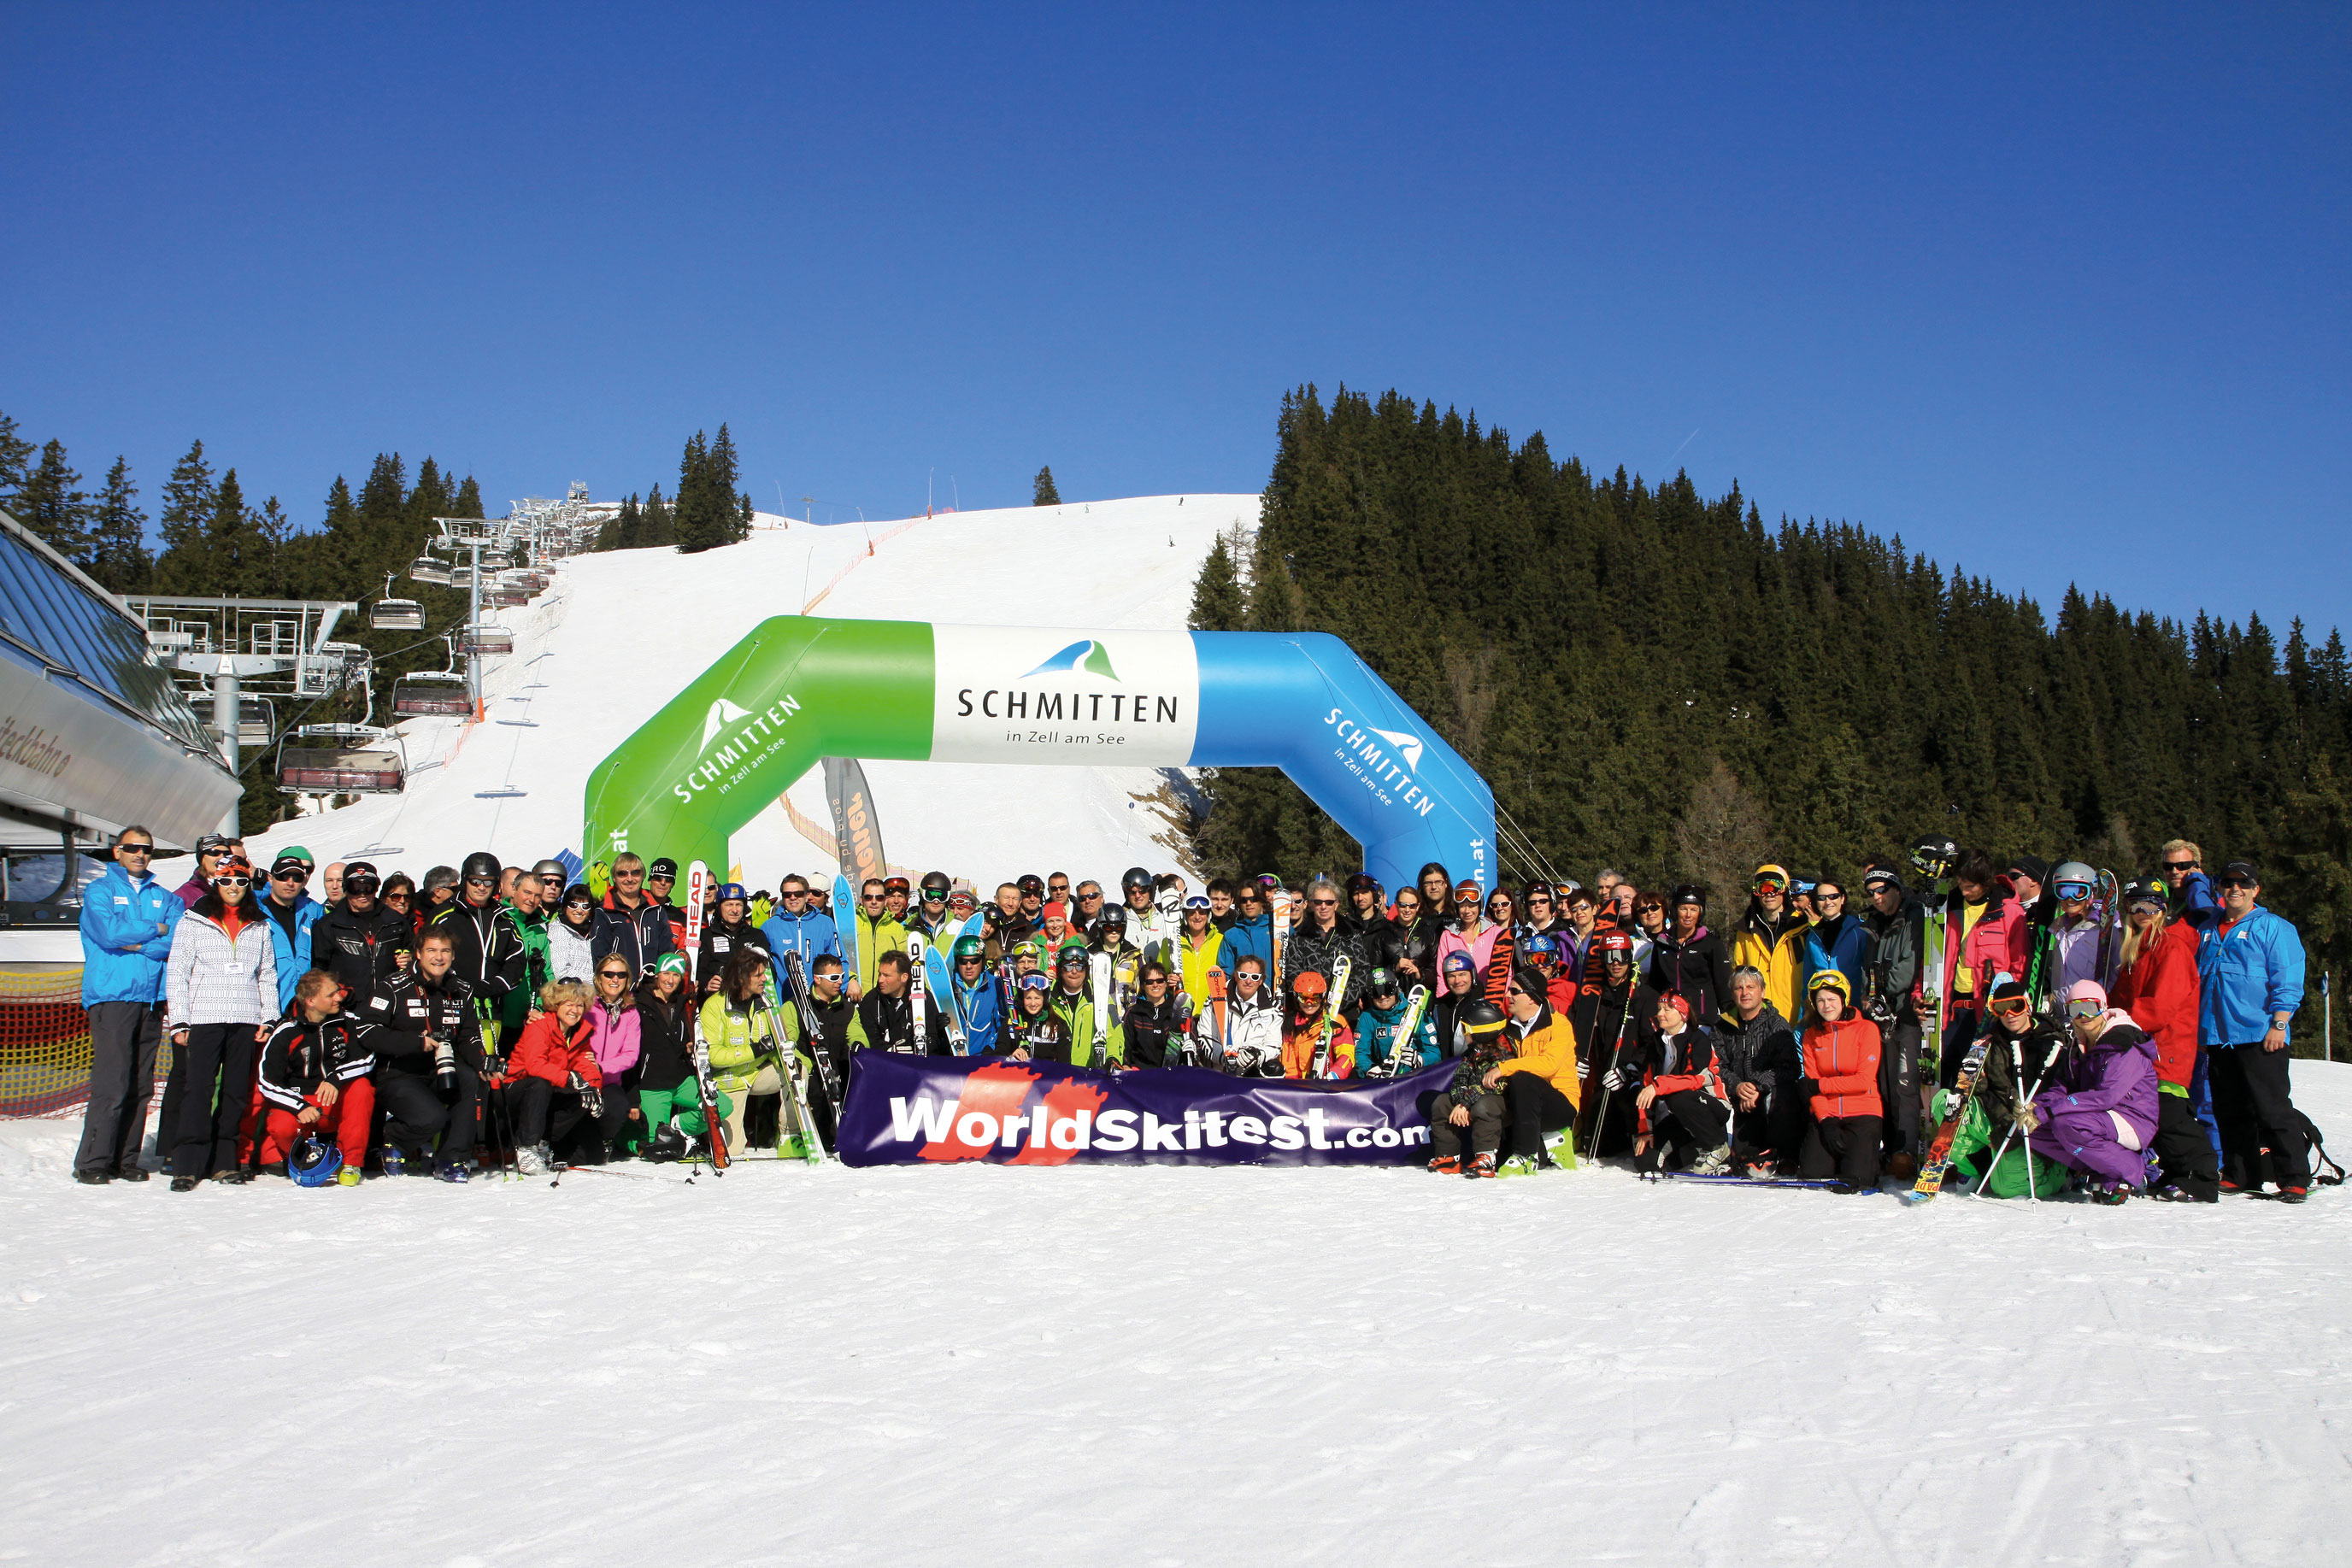 World Skitest 2011/12